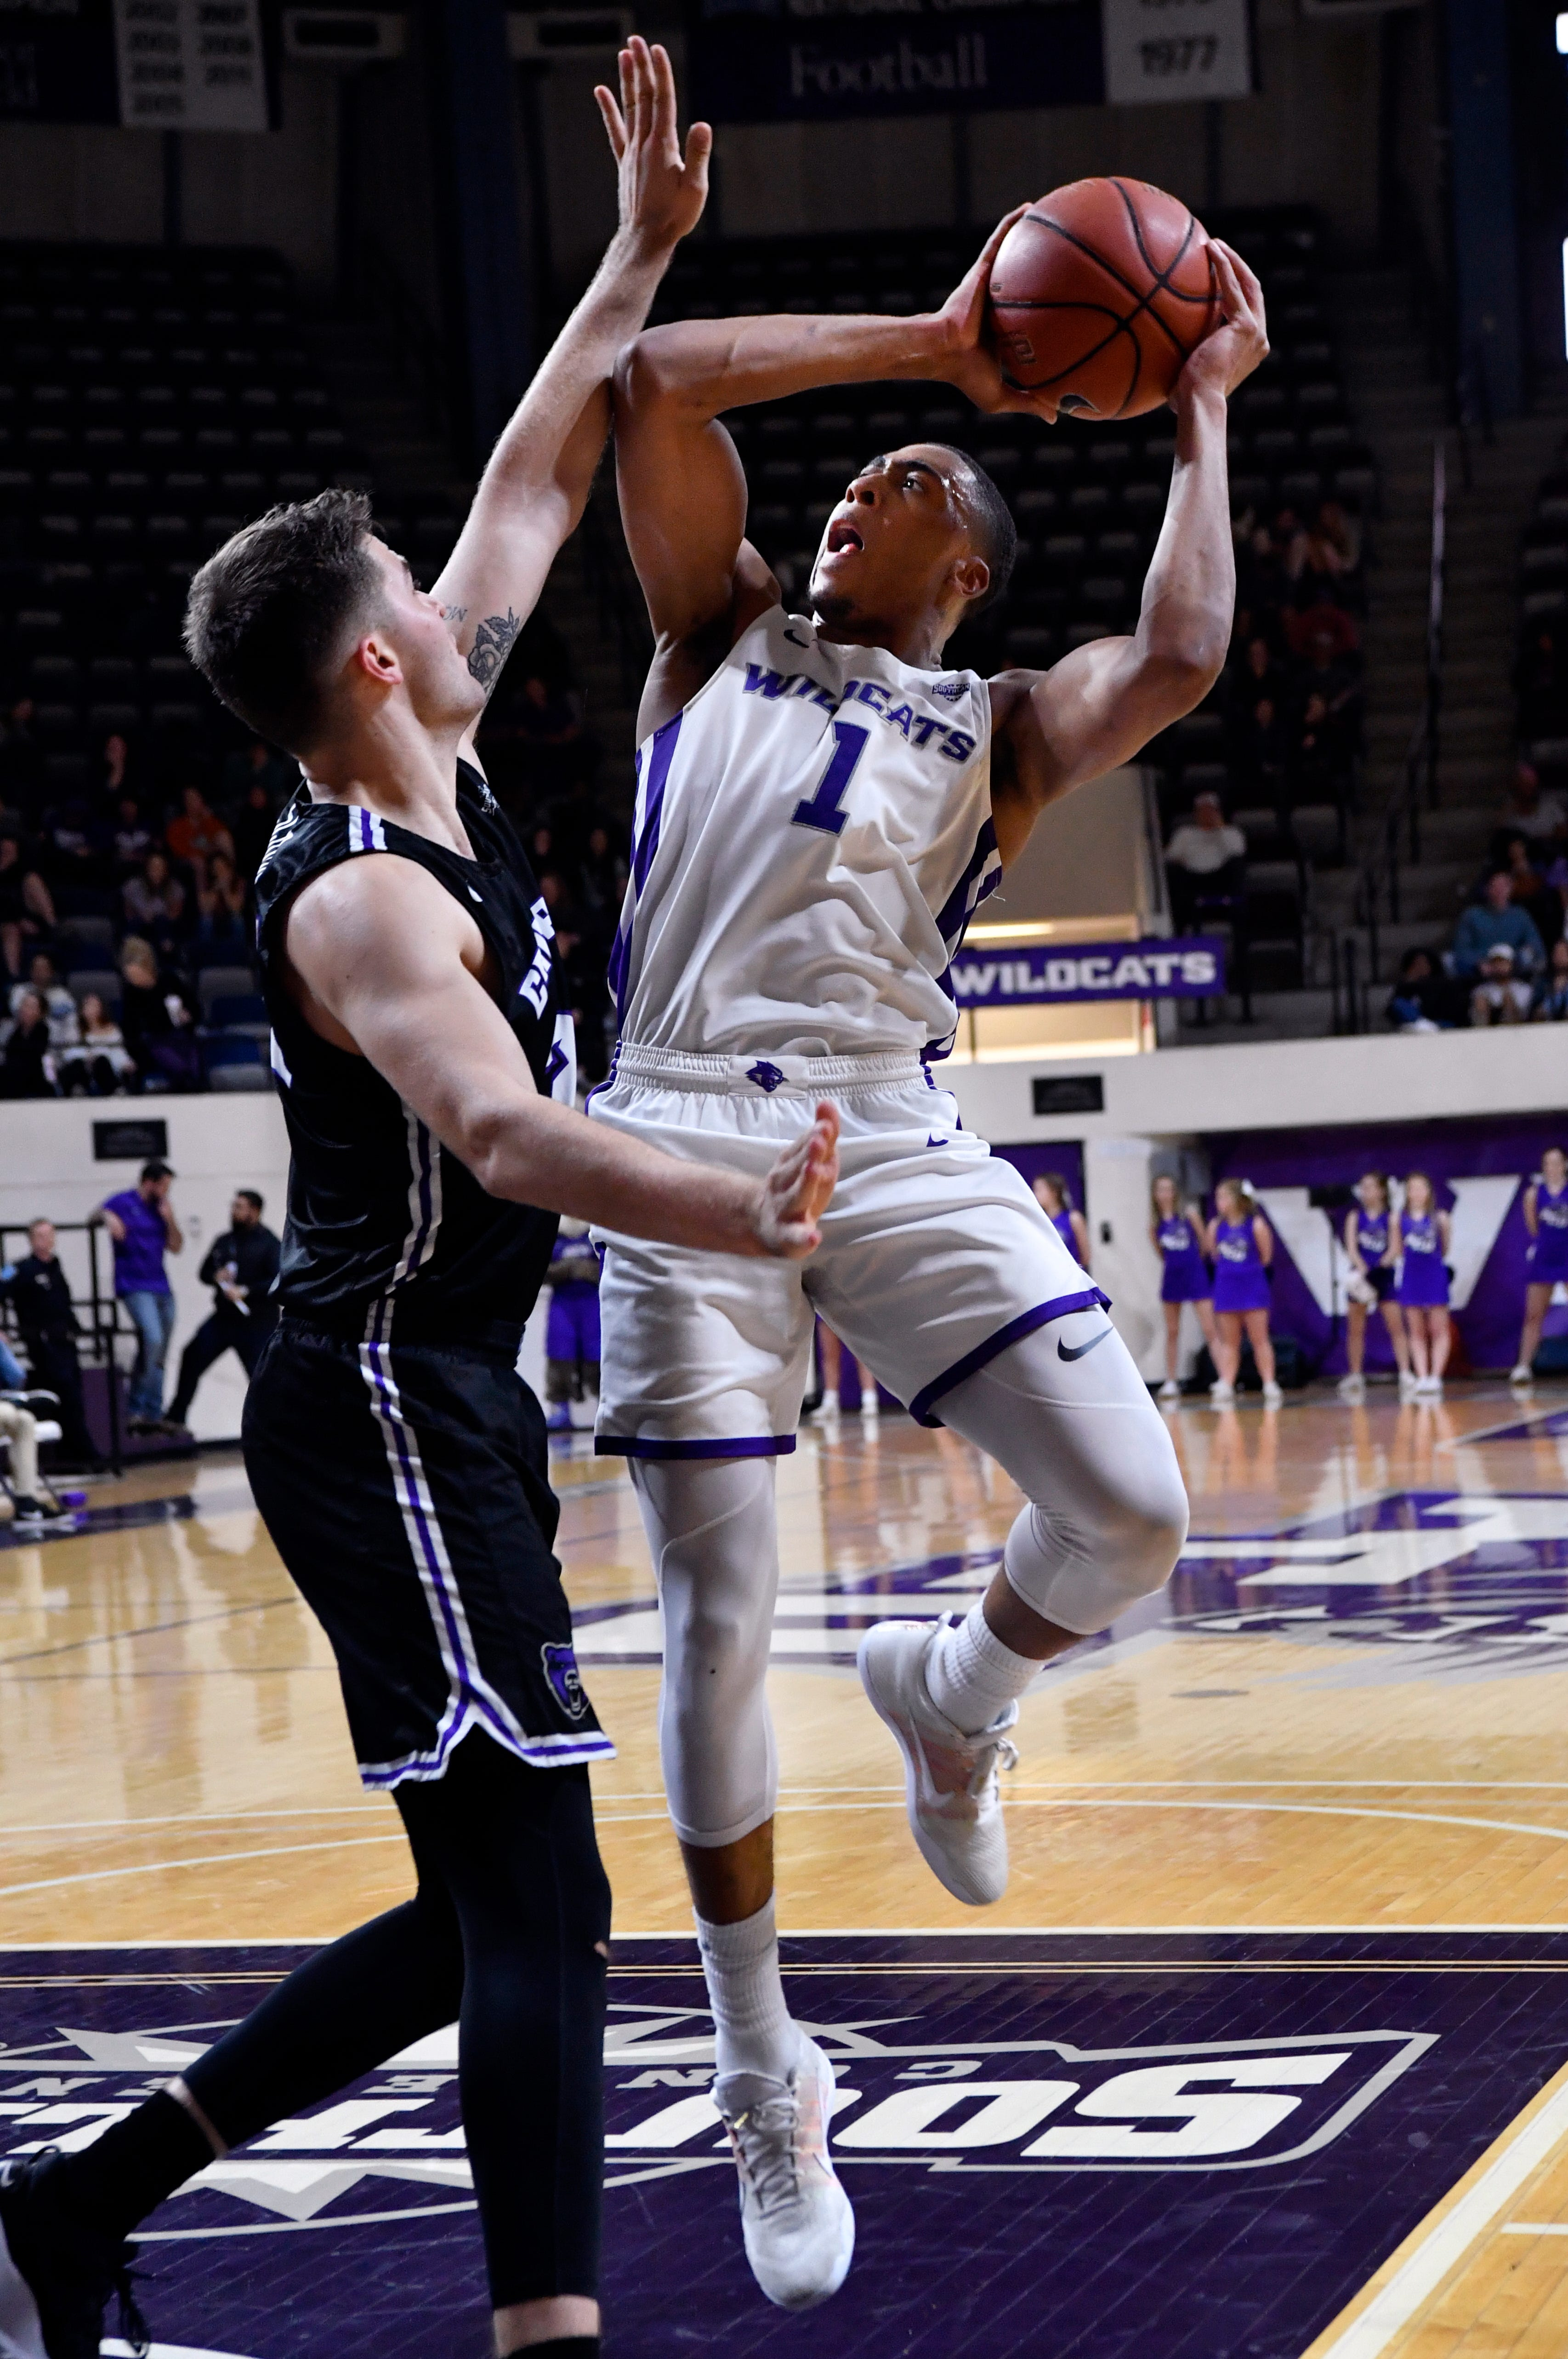 Abilene Christian's Jaren Lewis attempts to shoot over Tanner Schmit during Saturday's men's basketball game against Central Arkansas Saturday Jan. 26, 2019. Final score was 79-56, ACU.